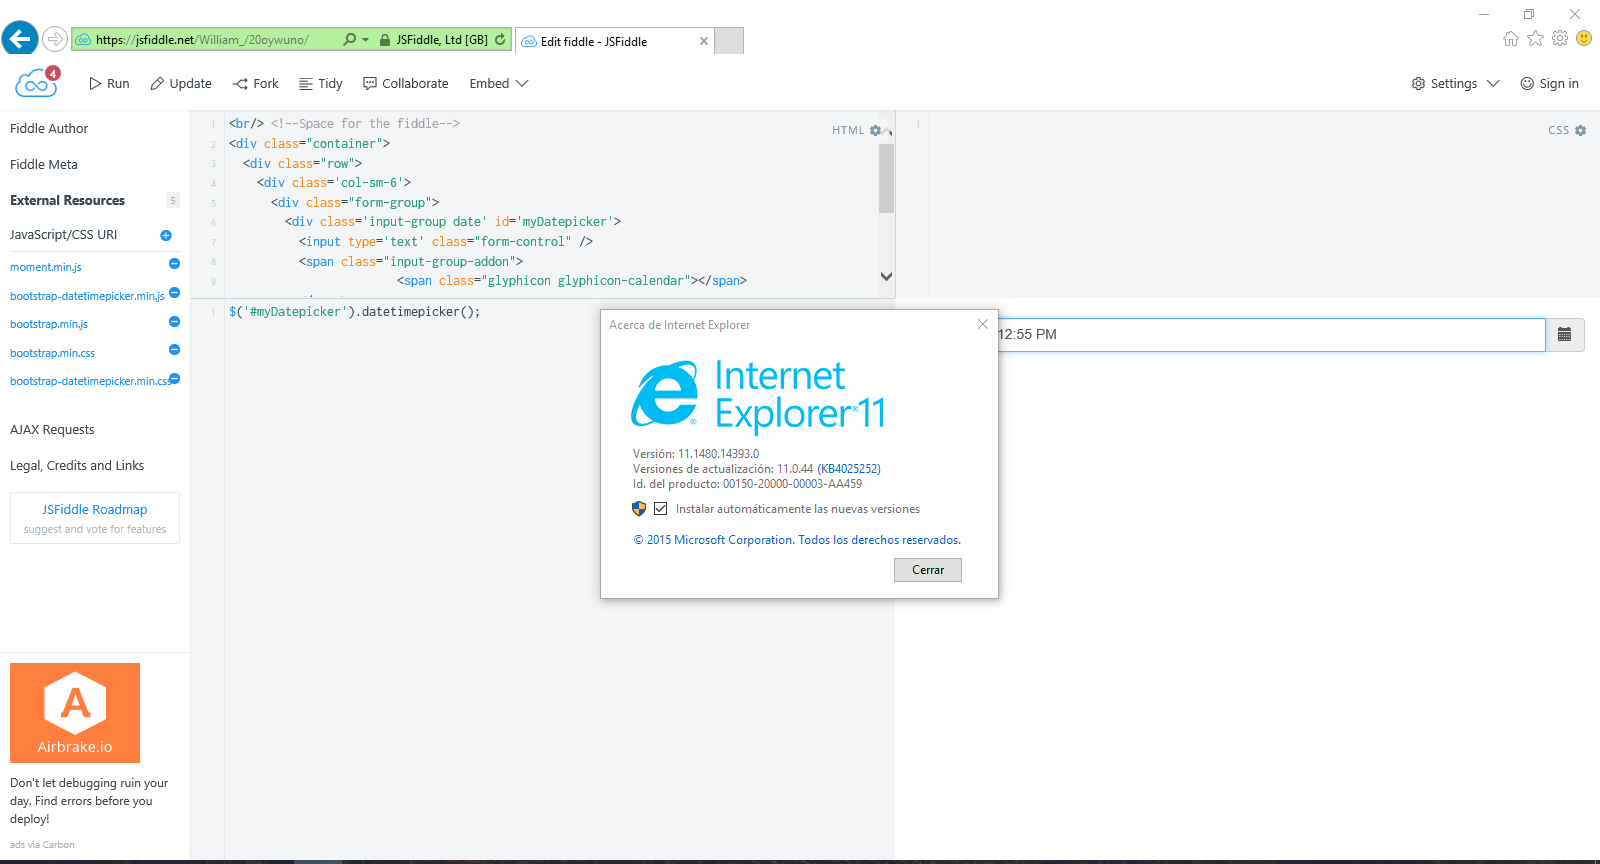 Date Time Picker not working in IE 11  · Issue #1669